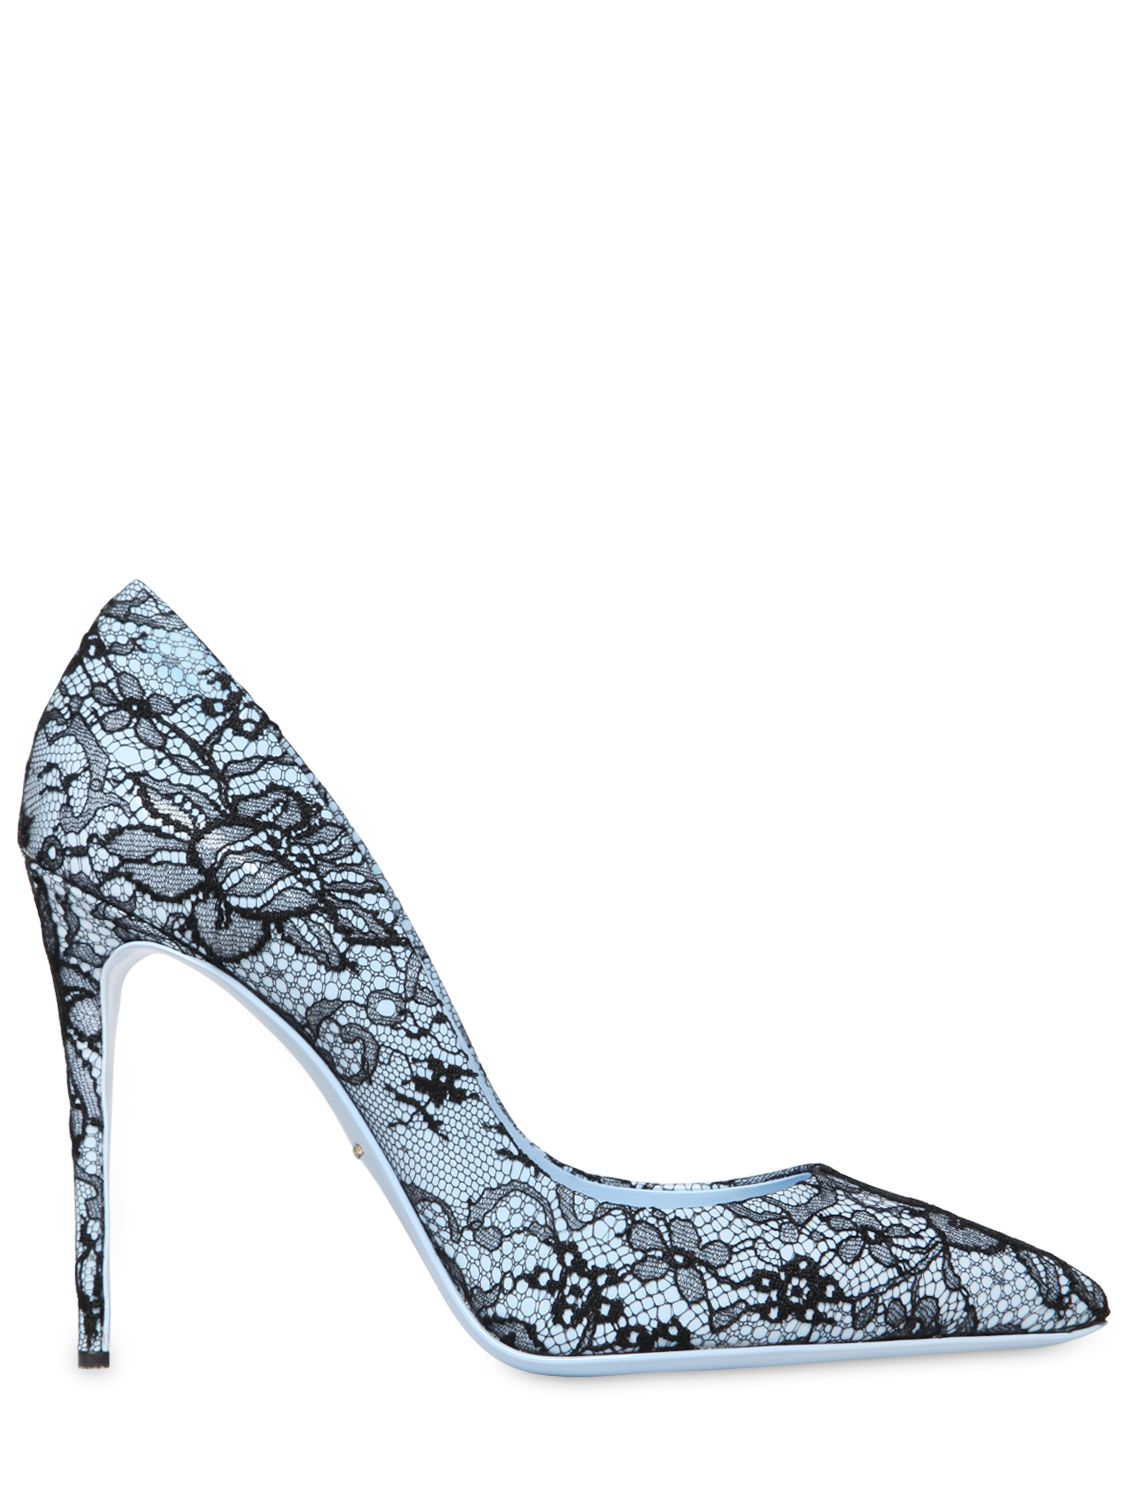 dadf00e71c5f Lyst - Dolce   Gabbana 105Mm Kate Patent Leather   Lace Pumps in Blue